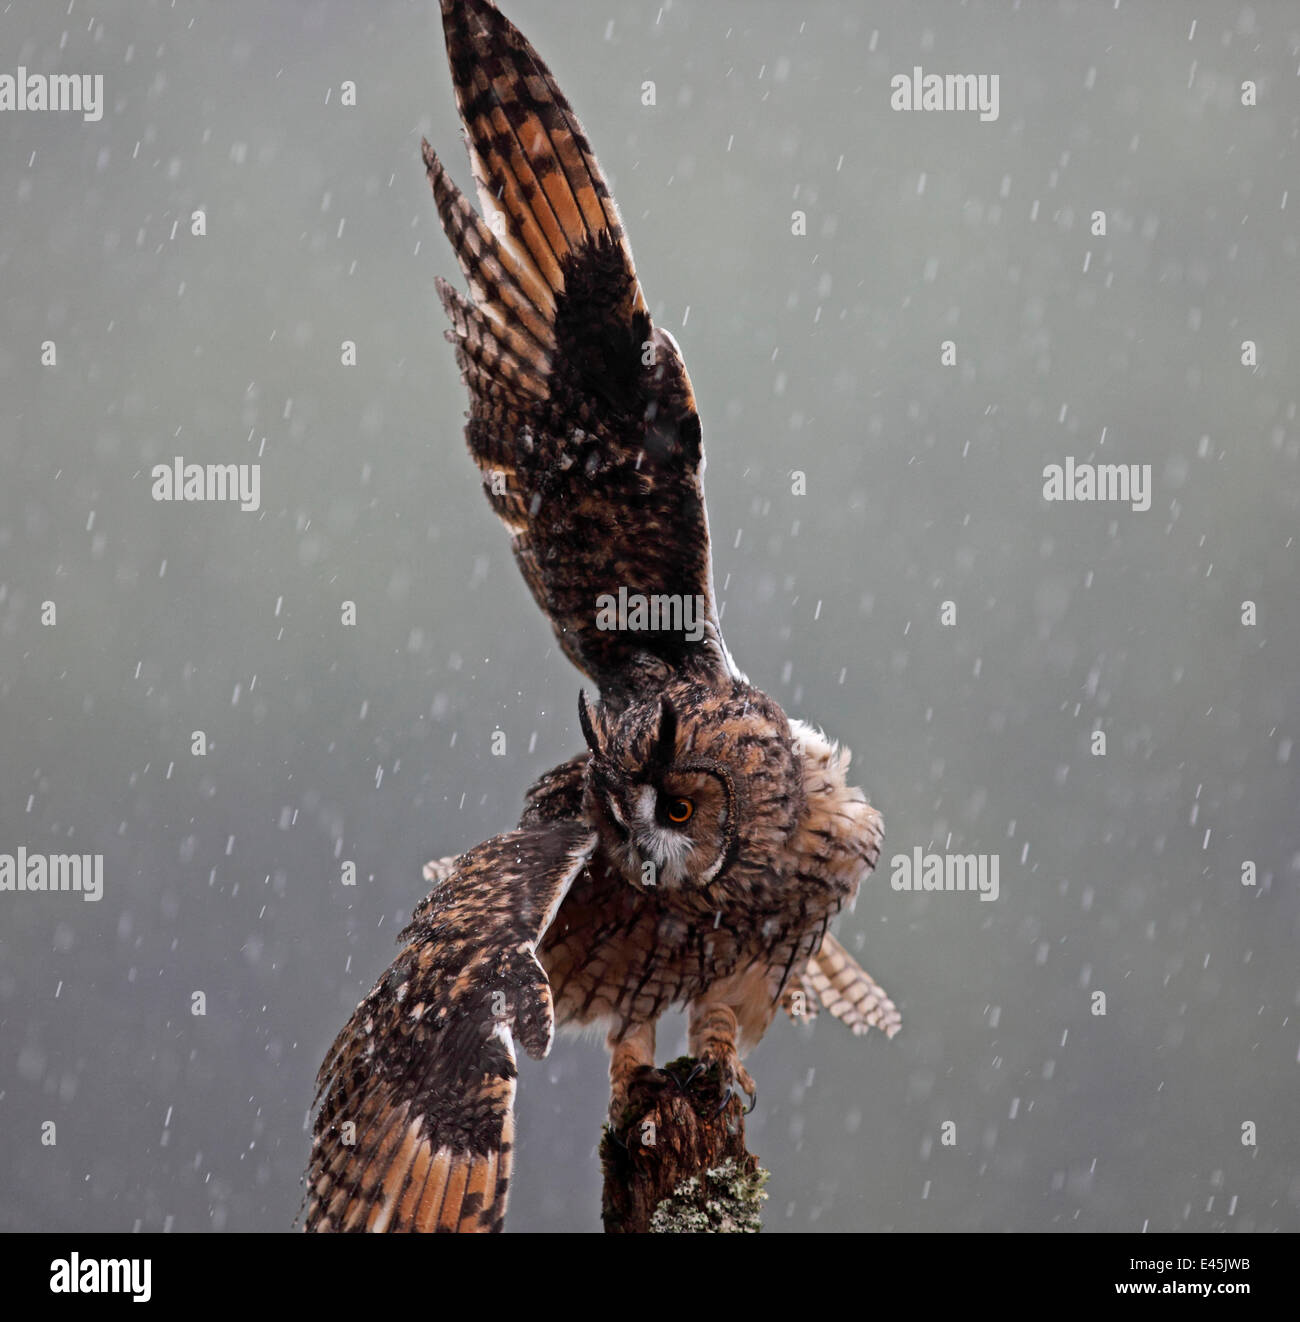 Long eared owl (Asio otus) perched on post, shaking wings in rain, Wales - Stock Image